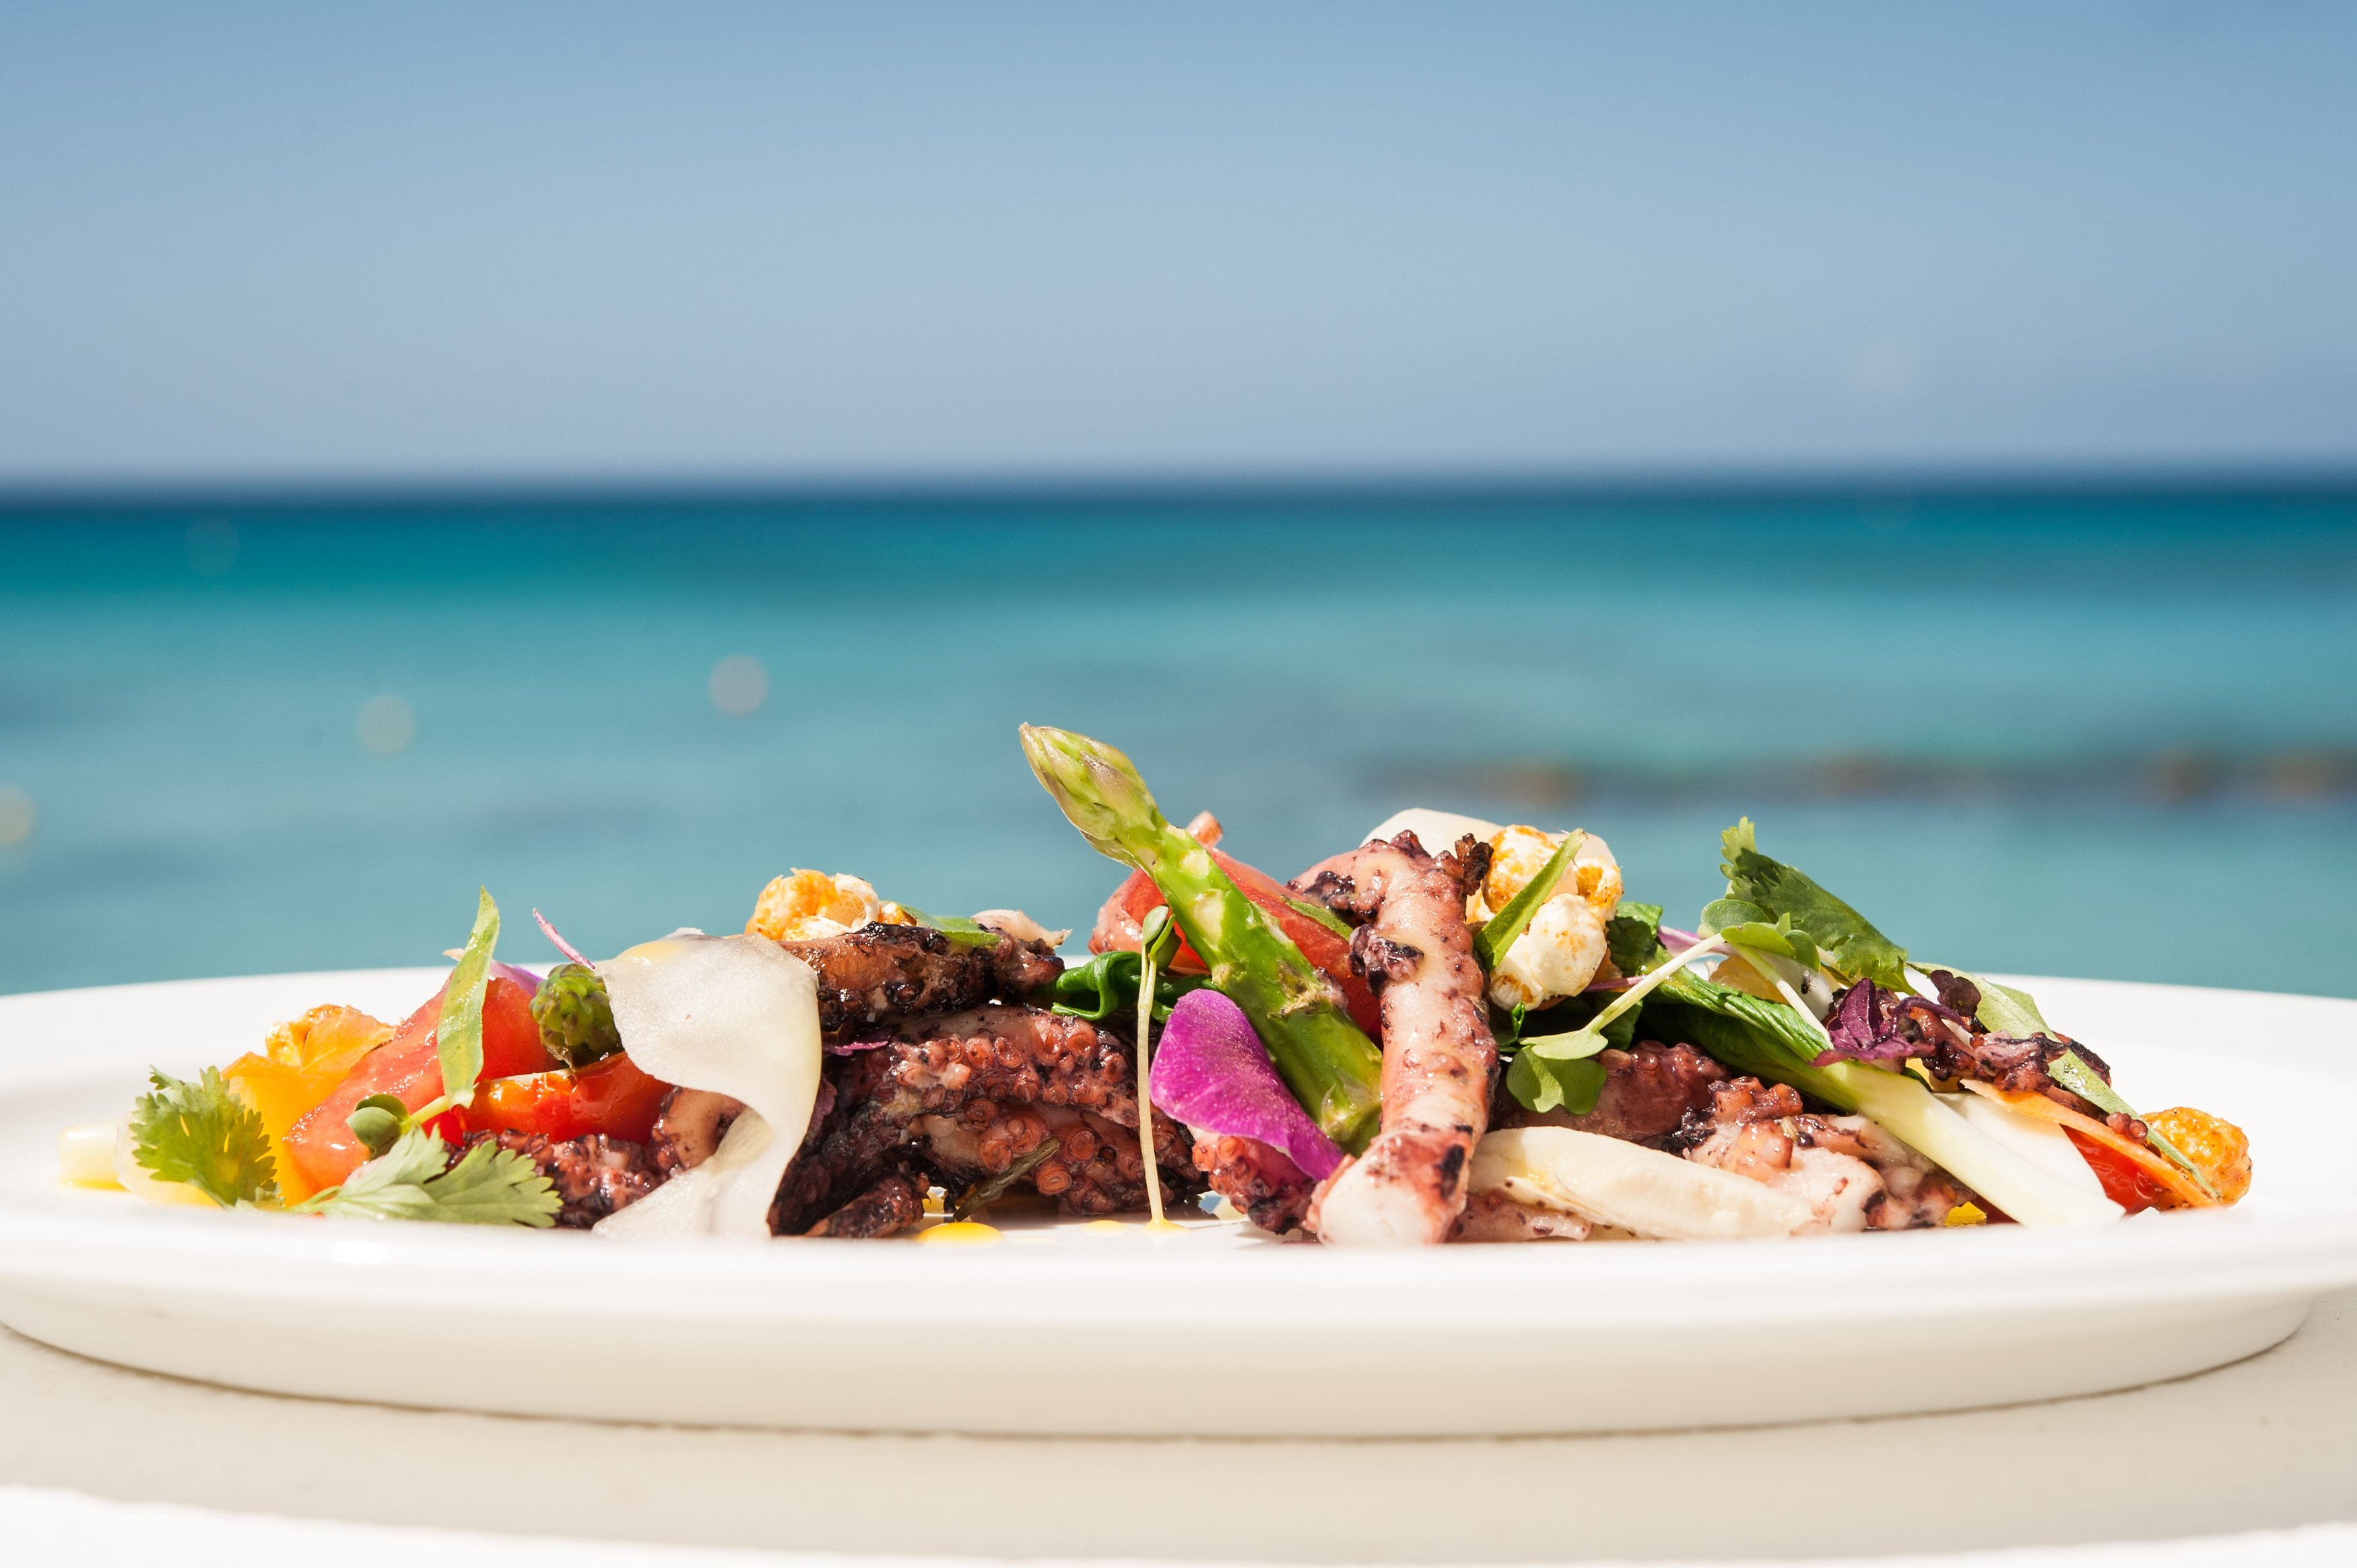 Culinary Delights at Cobblers Cove. Photo compliments Elegant Resorts.